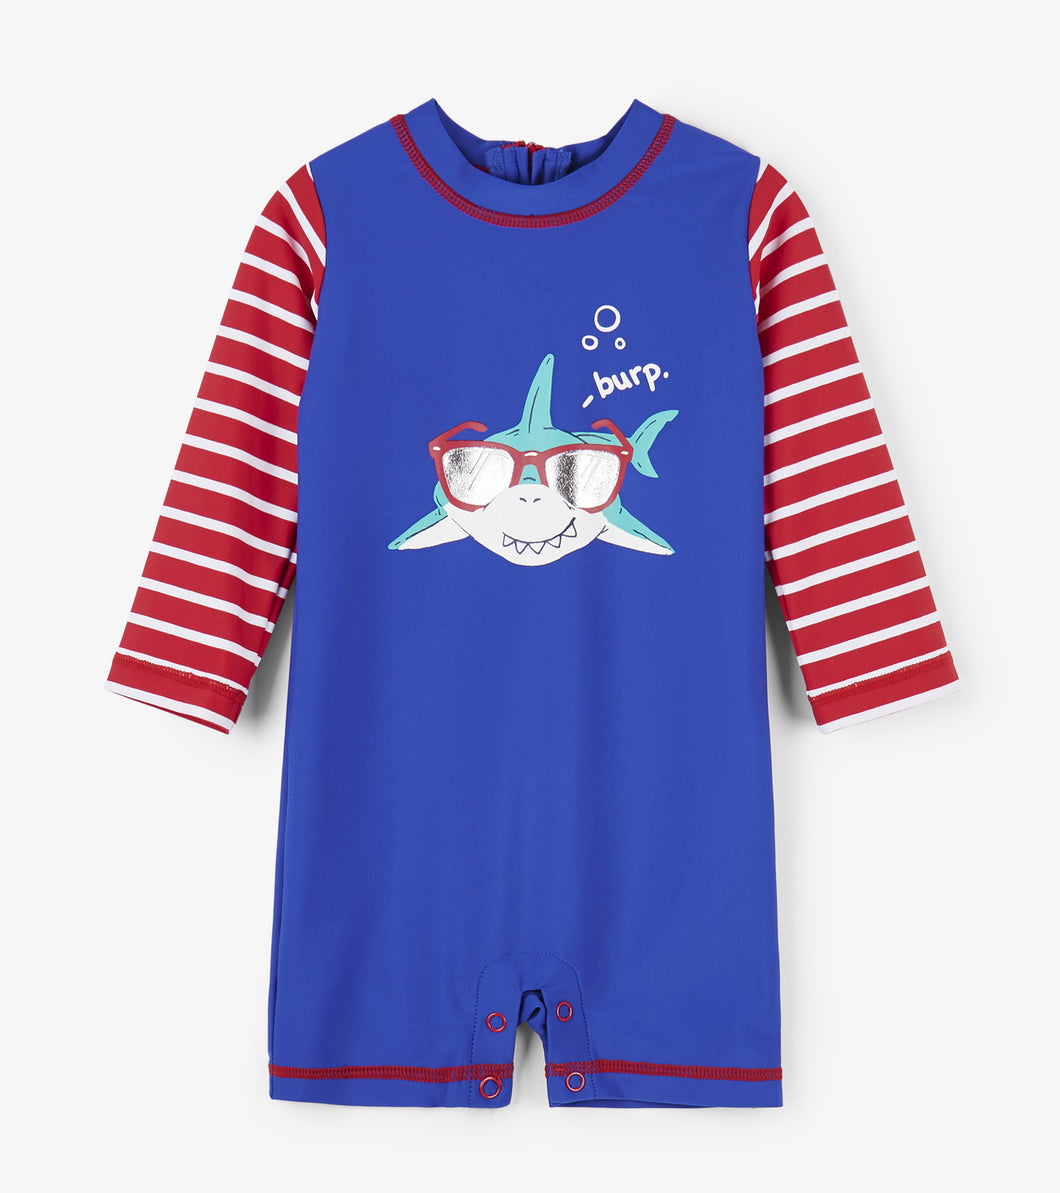 Cool Shark Baby Rashguard One-Piece